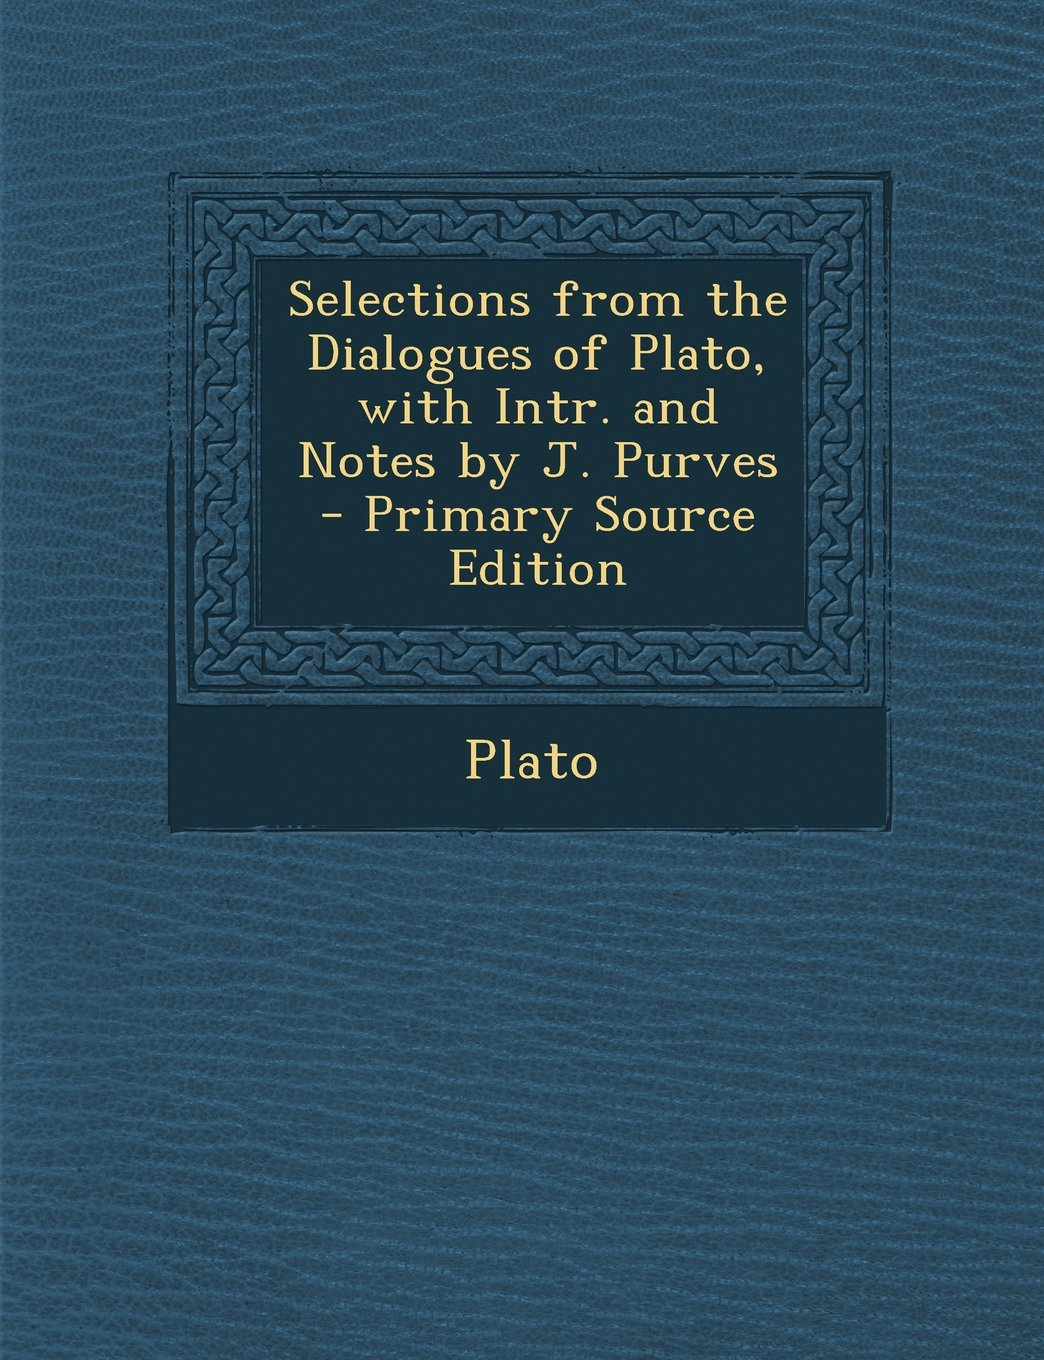 Selections from the Dialogues of Plato, with Intr. and Notes by J. Purves pdf